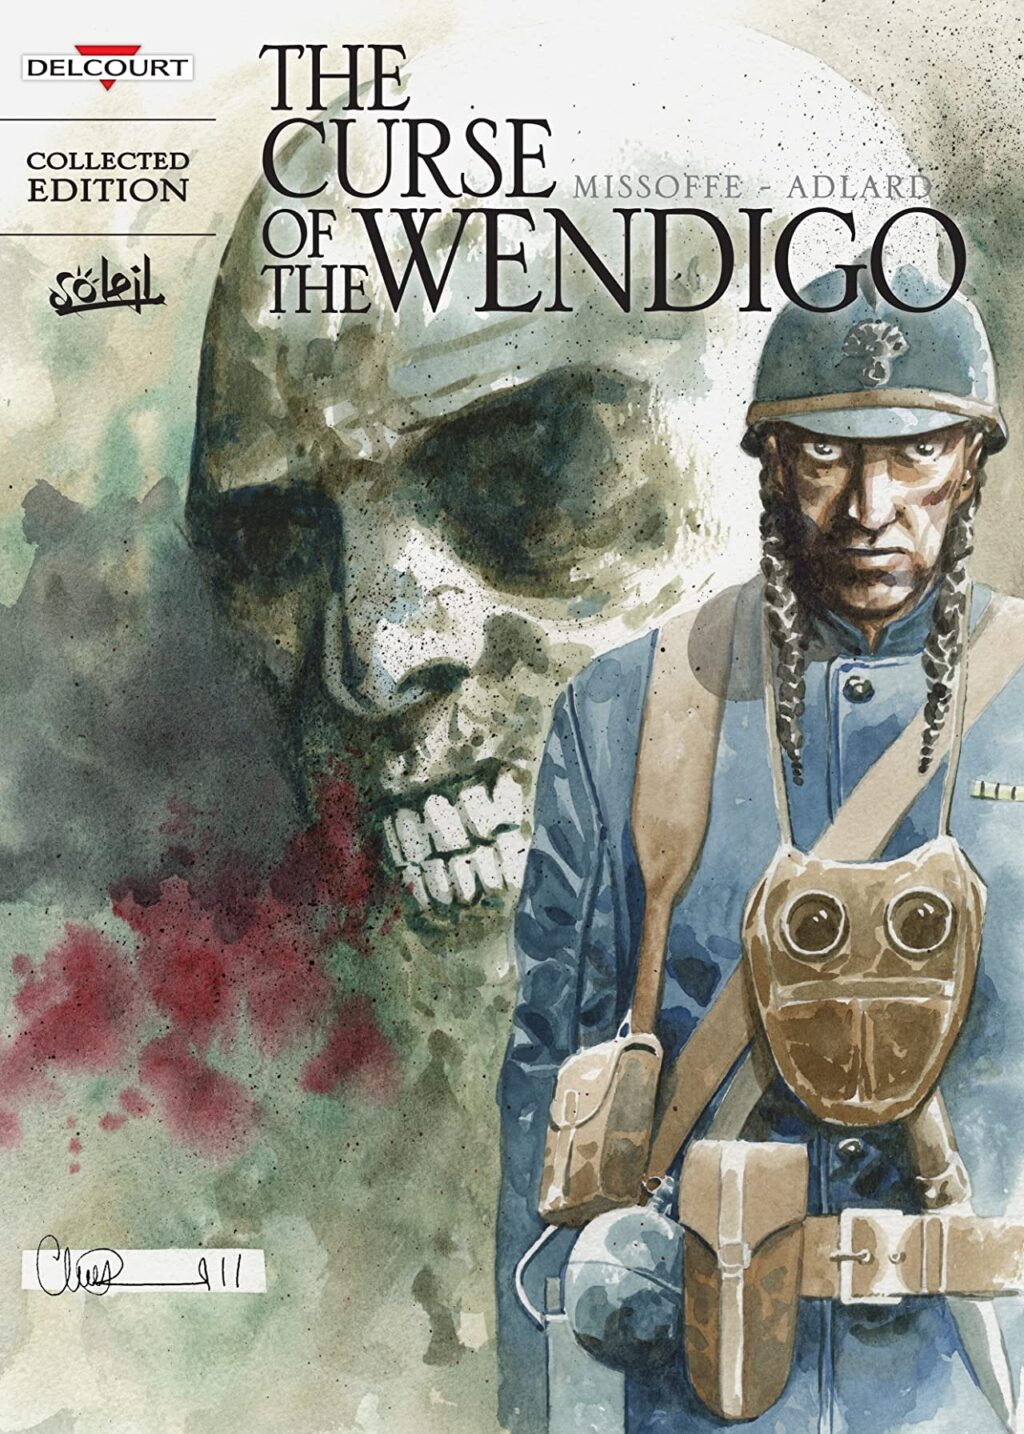 1 Curse of the Wendigo 1024x1434 - More Cursed Pages: Another 6 Comics for Horror Fans